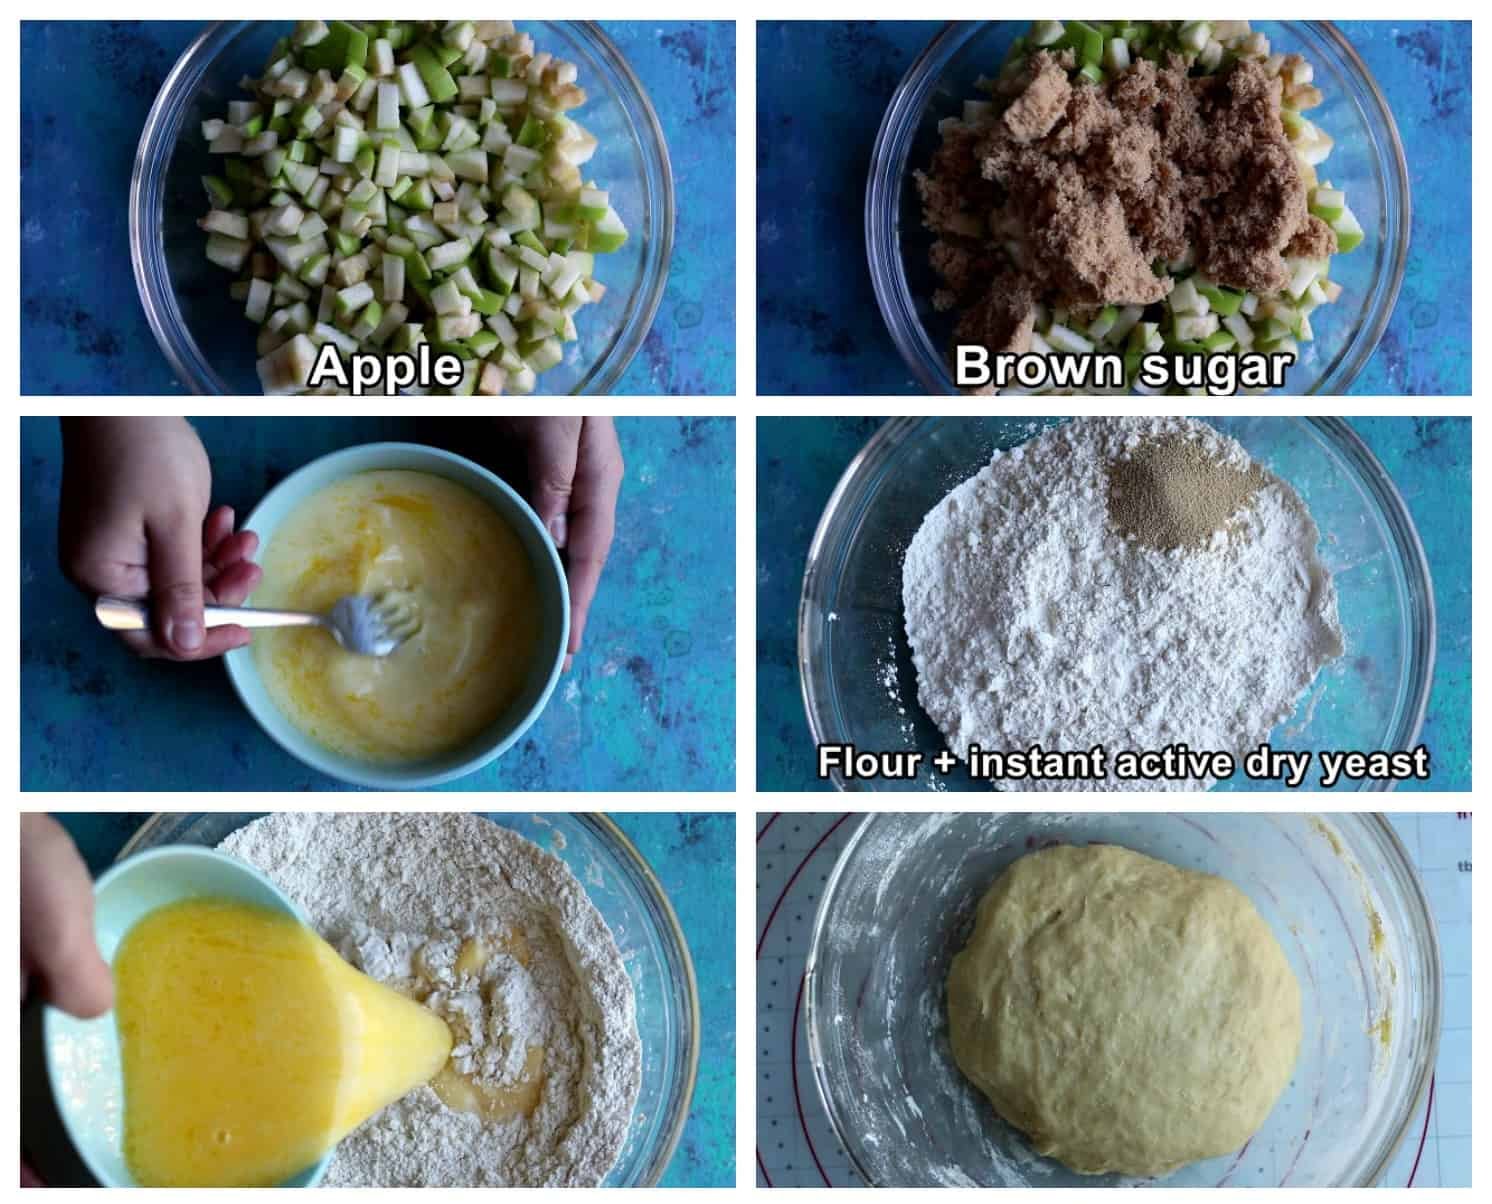 Mix apples with brown sugar. mix butter milk and water with eggs then mix flour and years add the wet ingredients and form the dough.